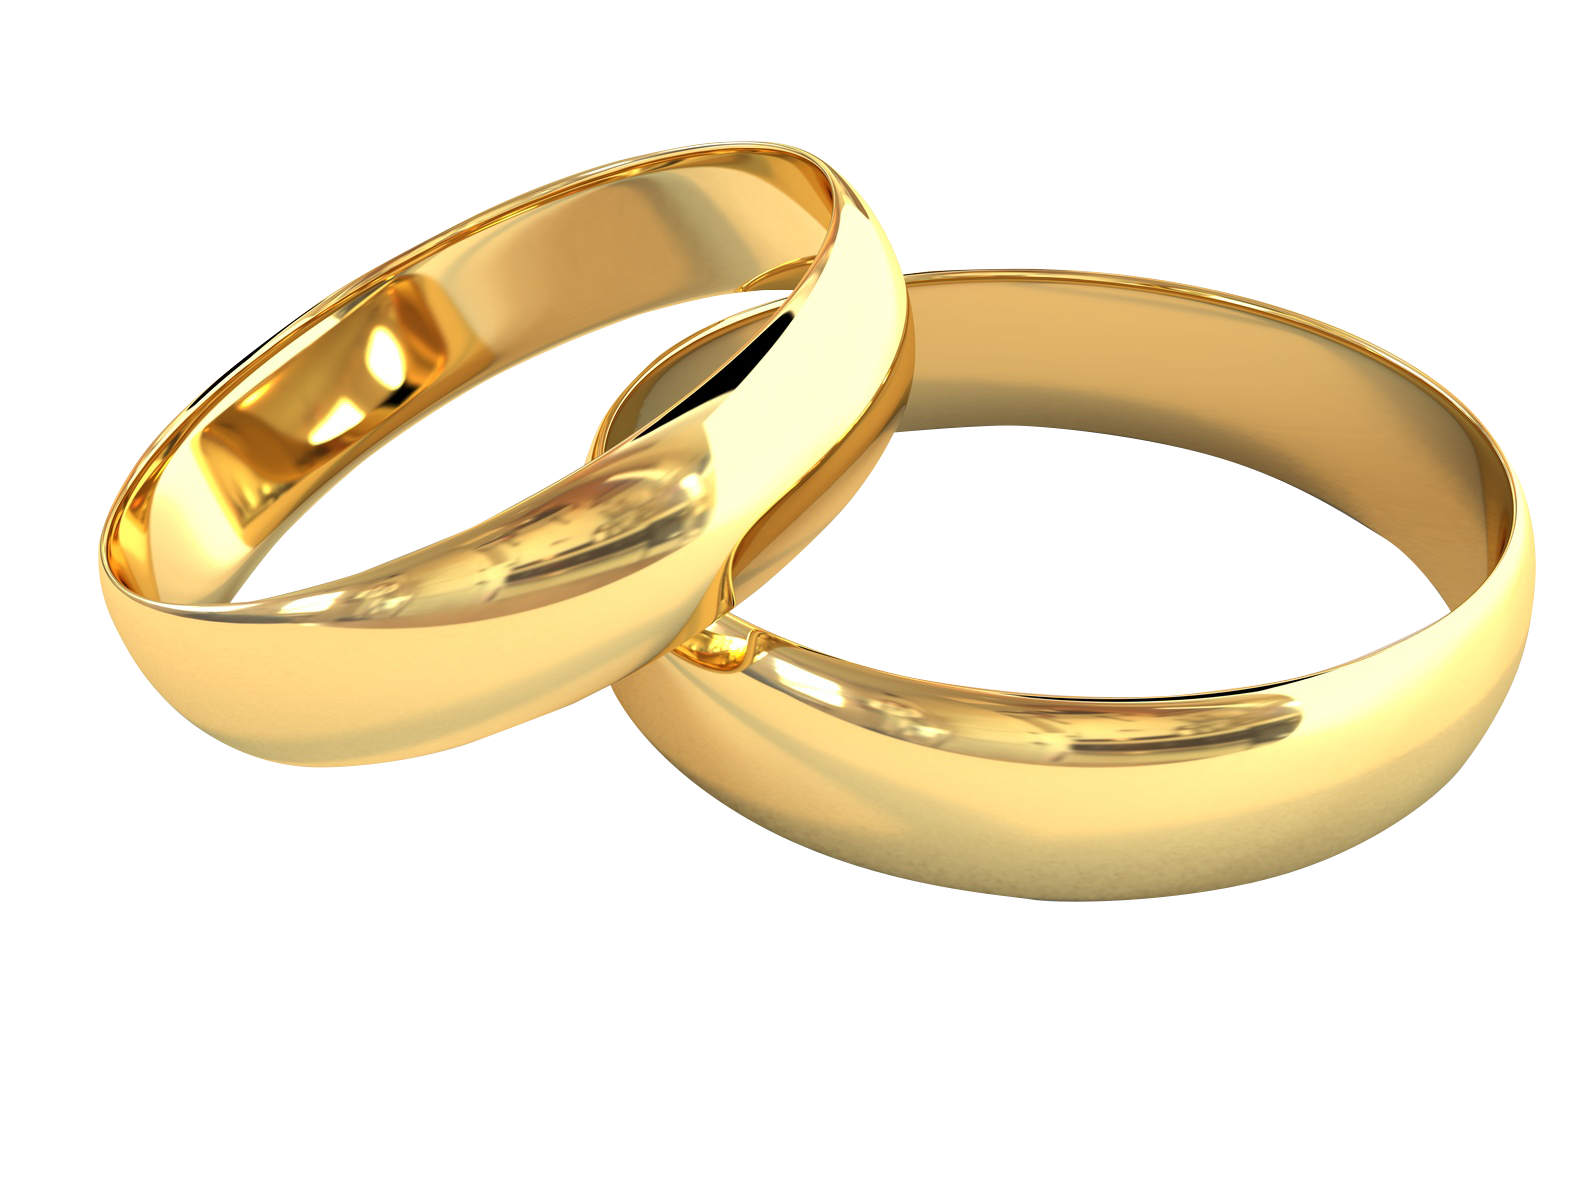 Wedding ring images free. Diamond band png clip art free library